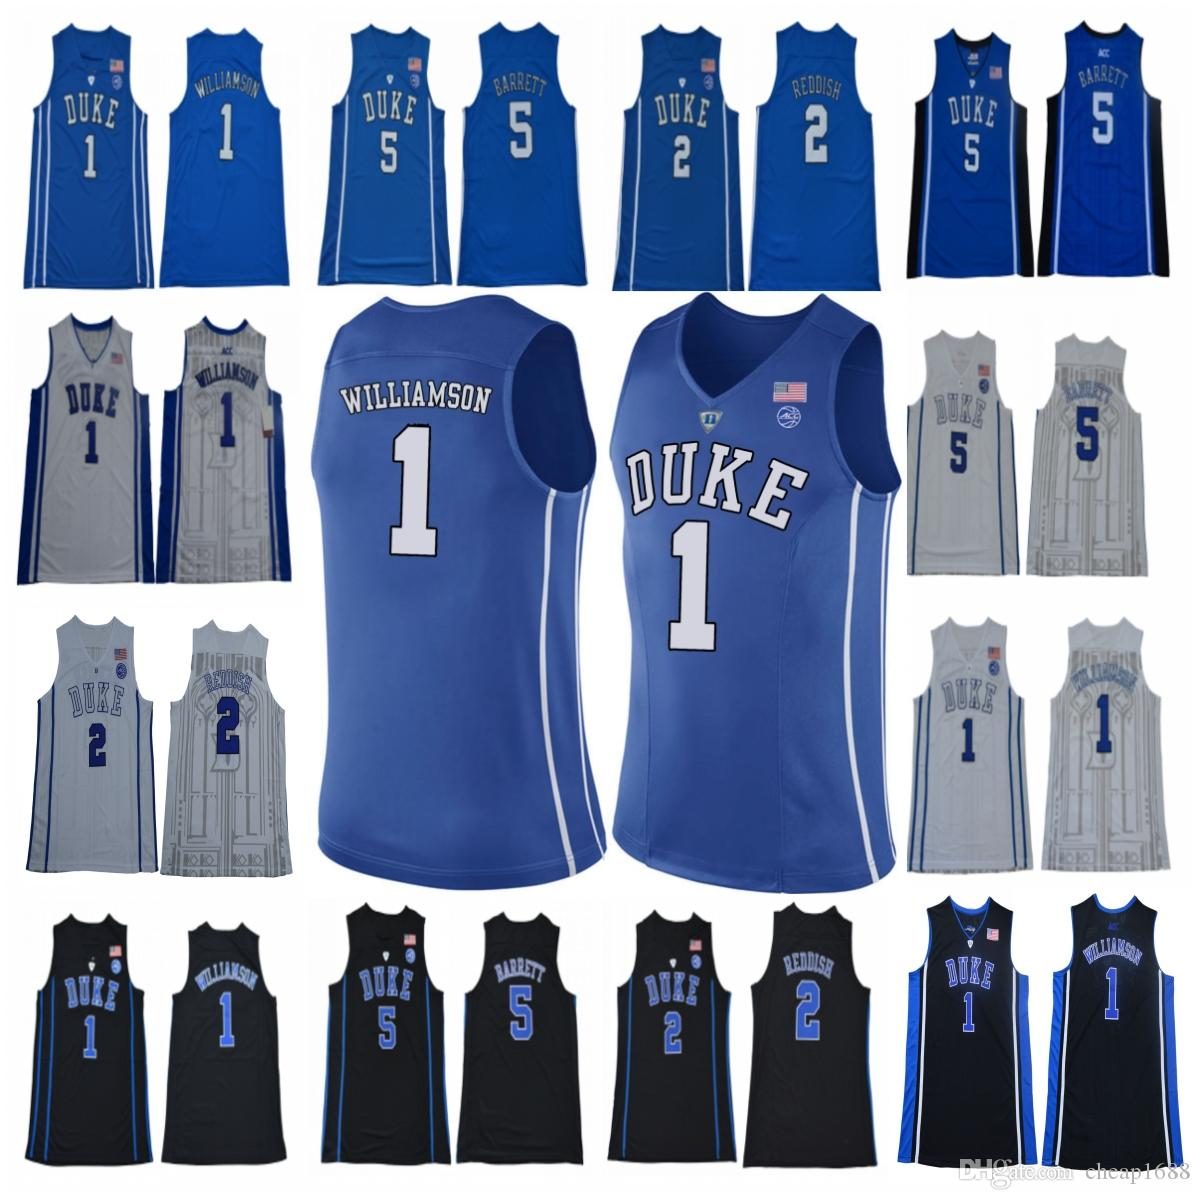 6d14a70ef63 2019 NCAA Duke Blue Devils 1 Zion Williamson 5 RJ Barrett 2 Cam Reddish  White Blue Black Men Youth College Basketball Jerseys From Cheap1688